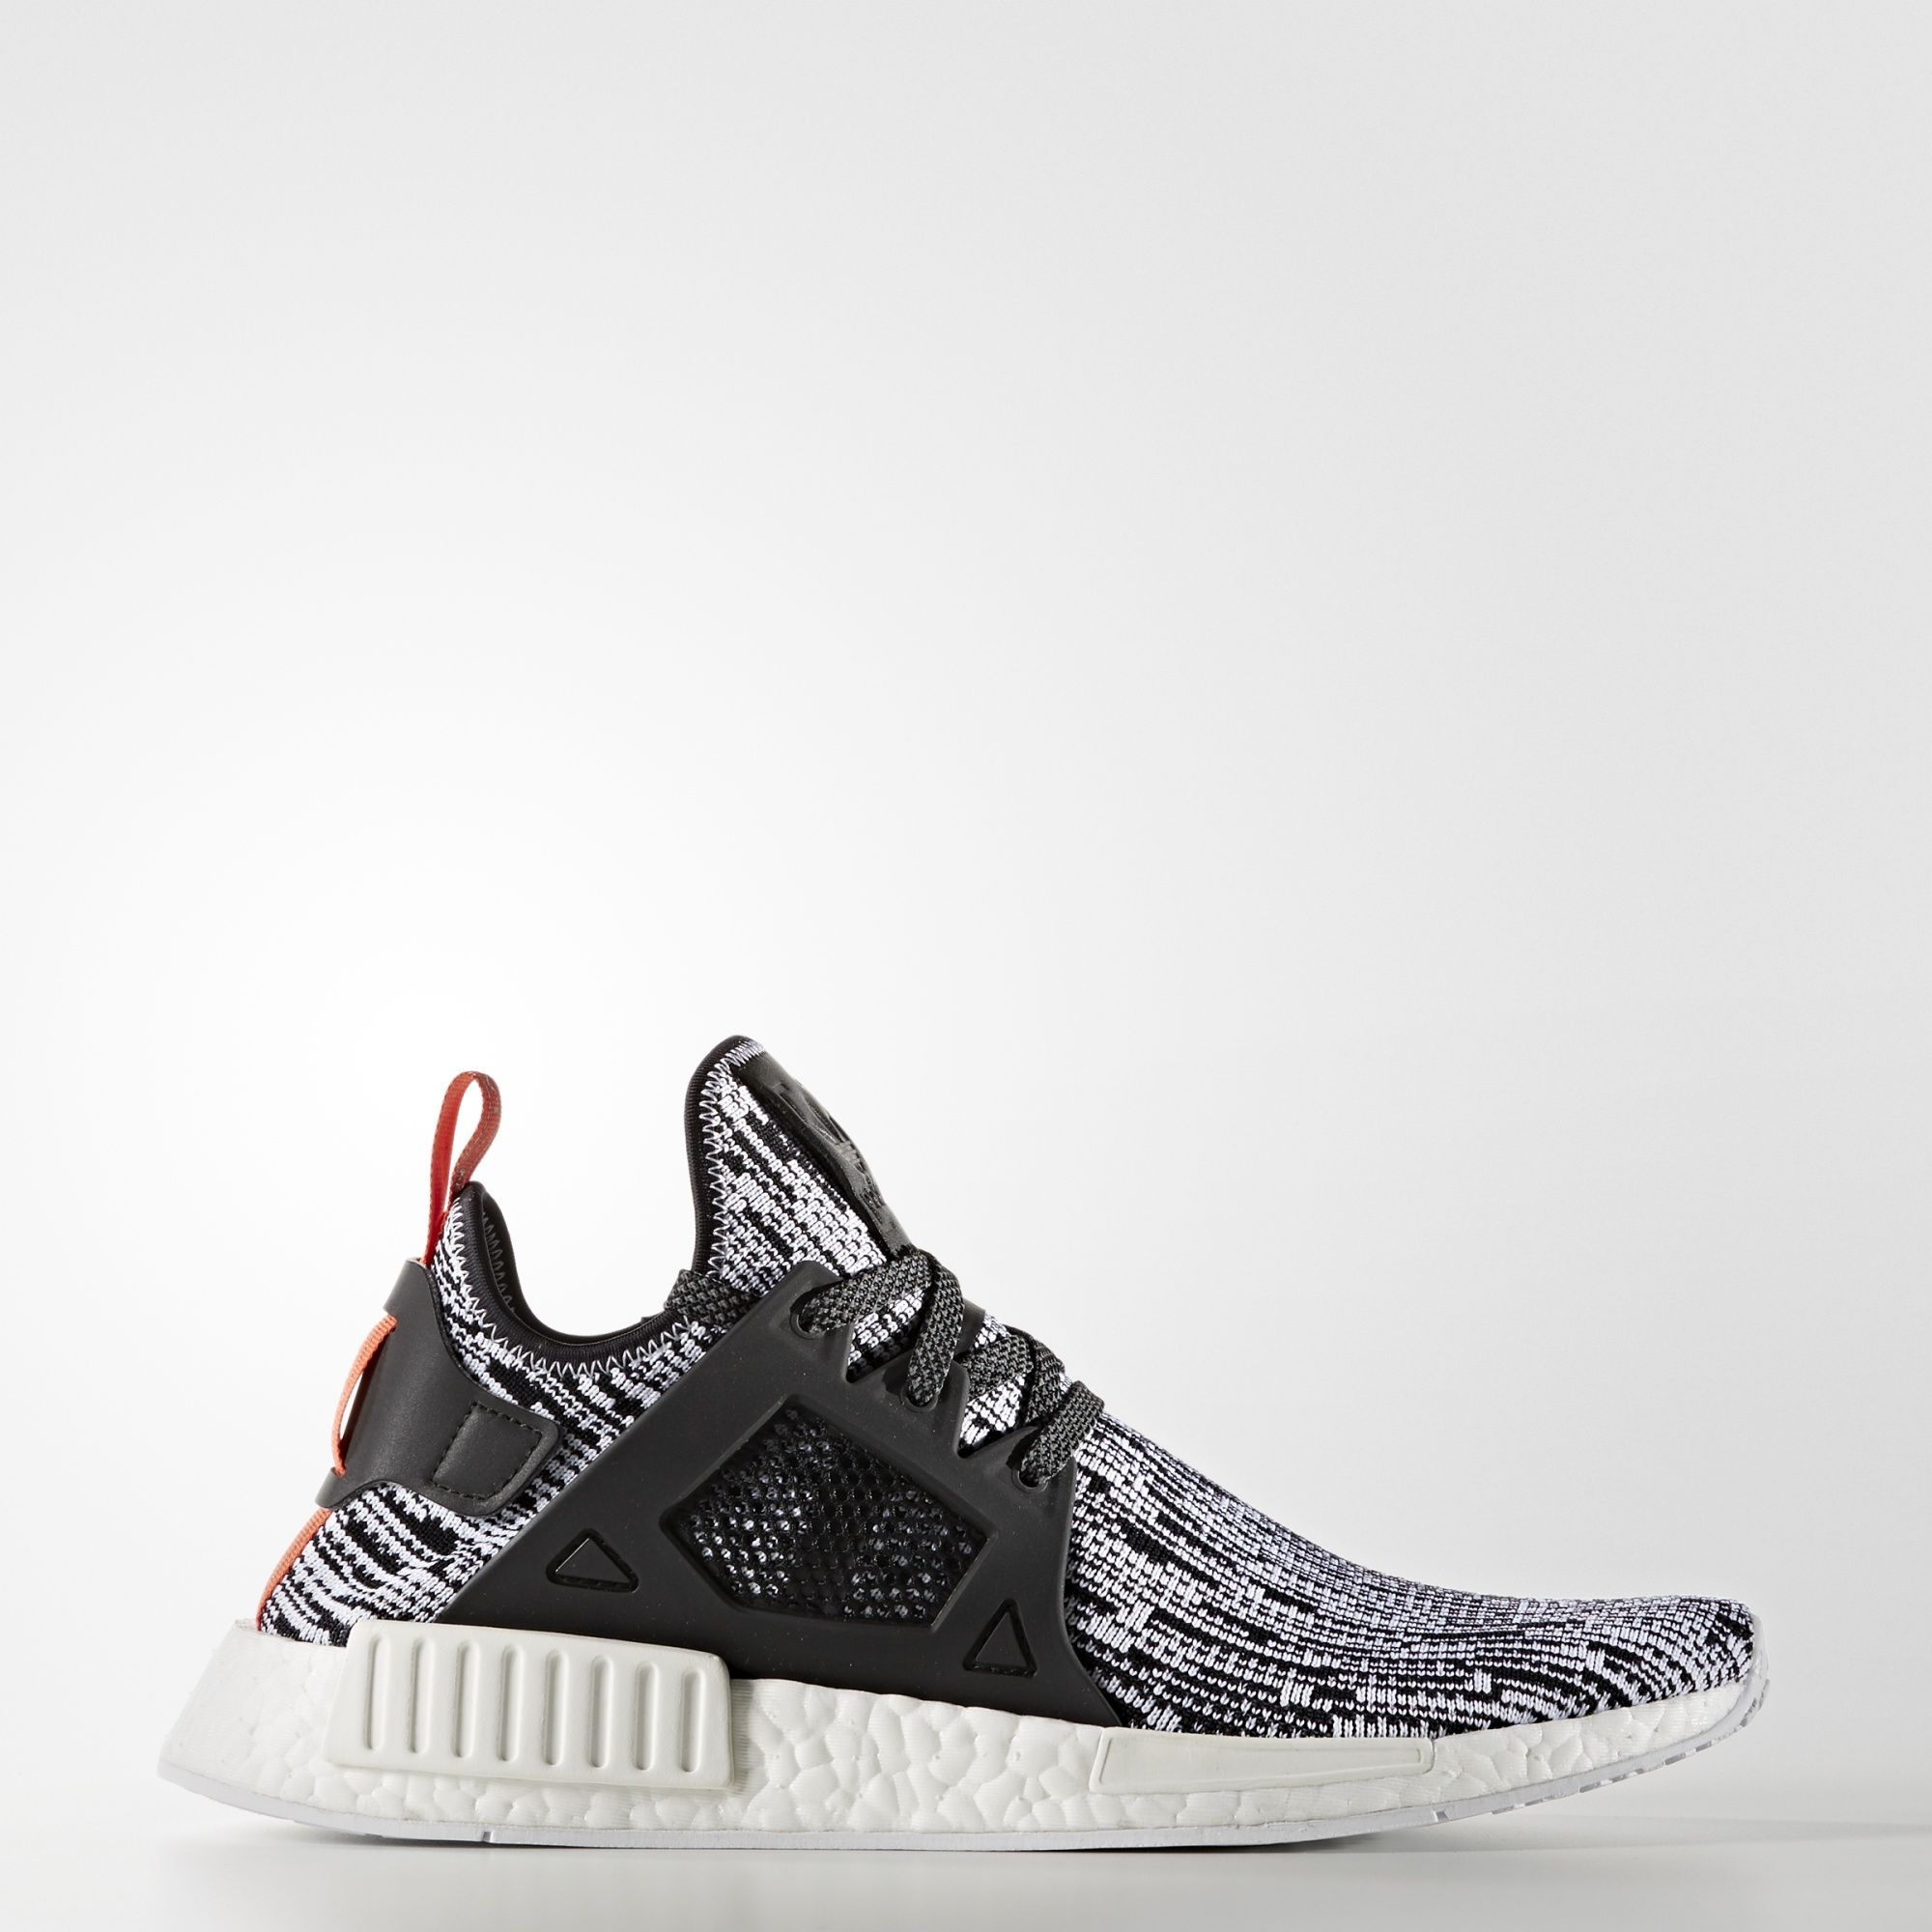 Footwear · adidas - NMD_XR1 Primeknit Shoes